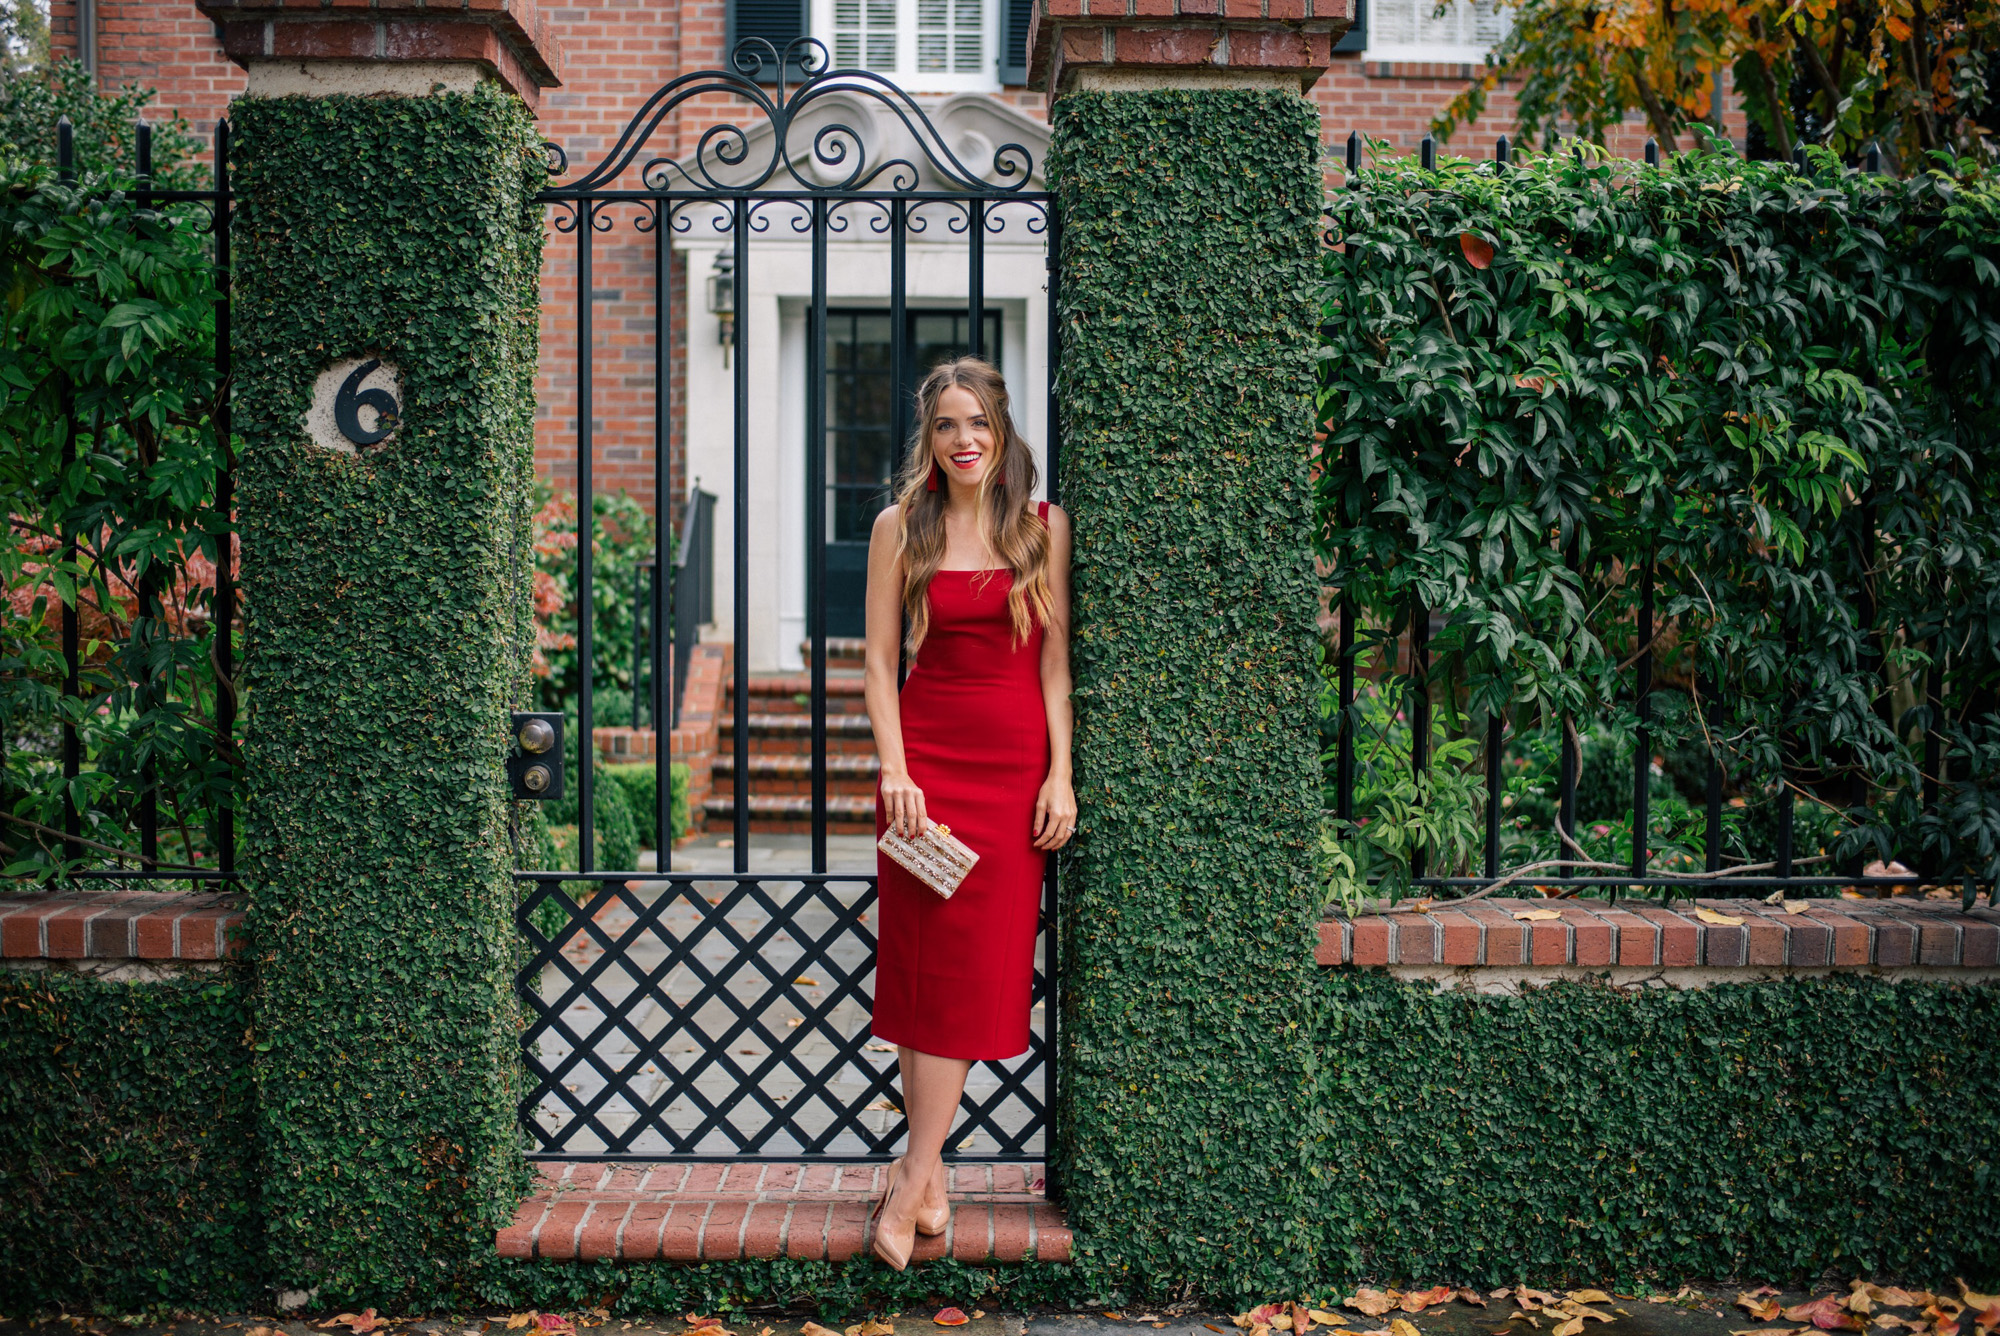 gmg-red-dress-holiday-1519